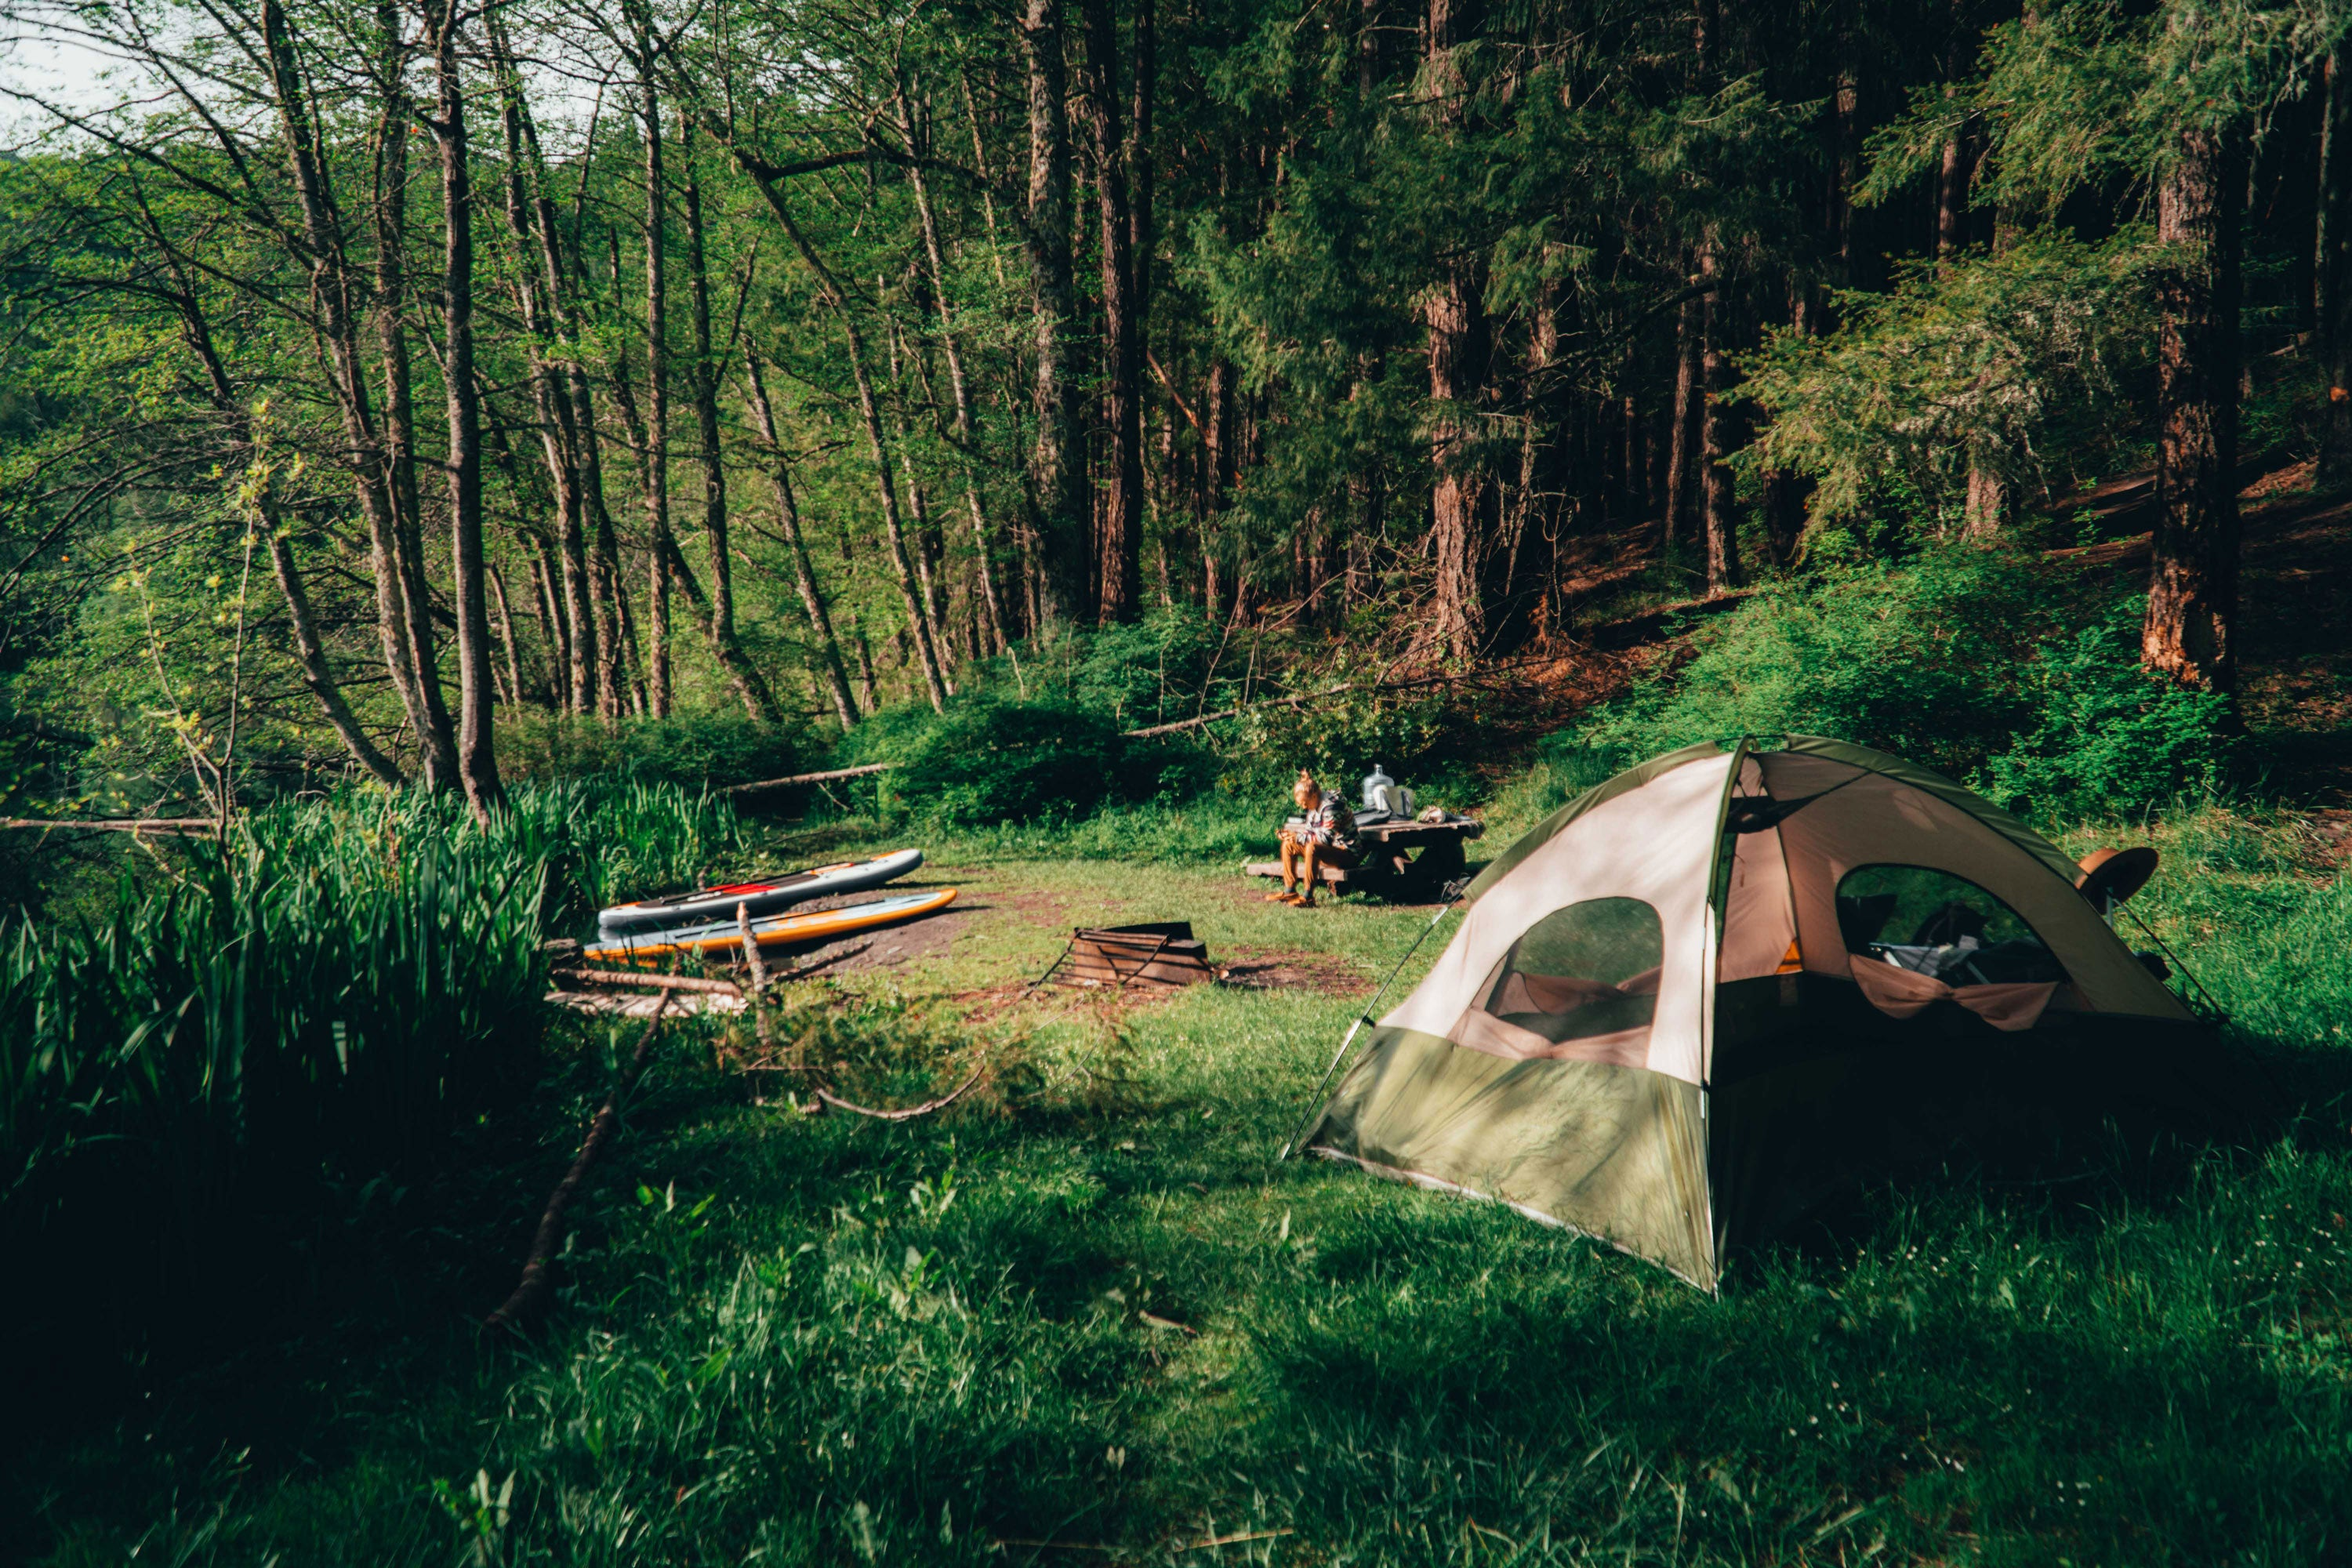 how to find your perfect campsite and slippers this spring and summer